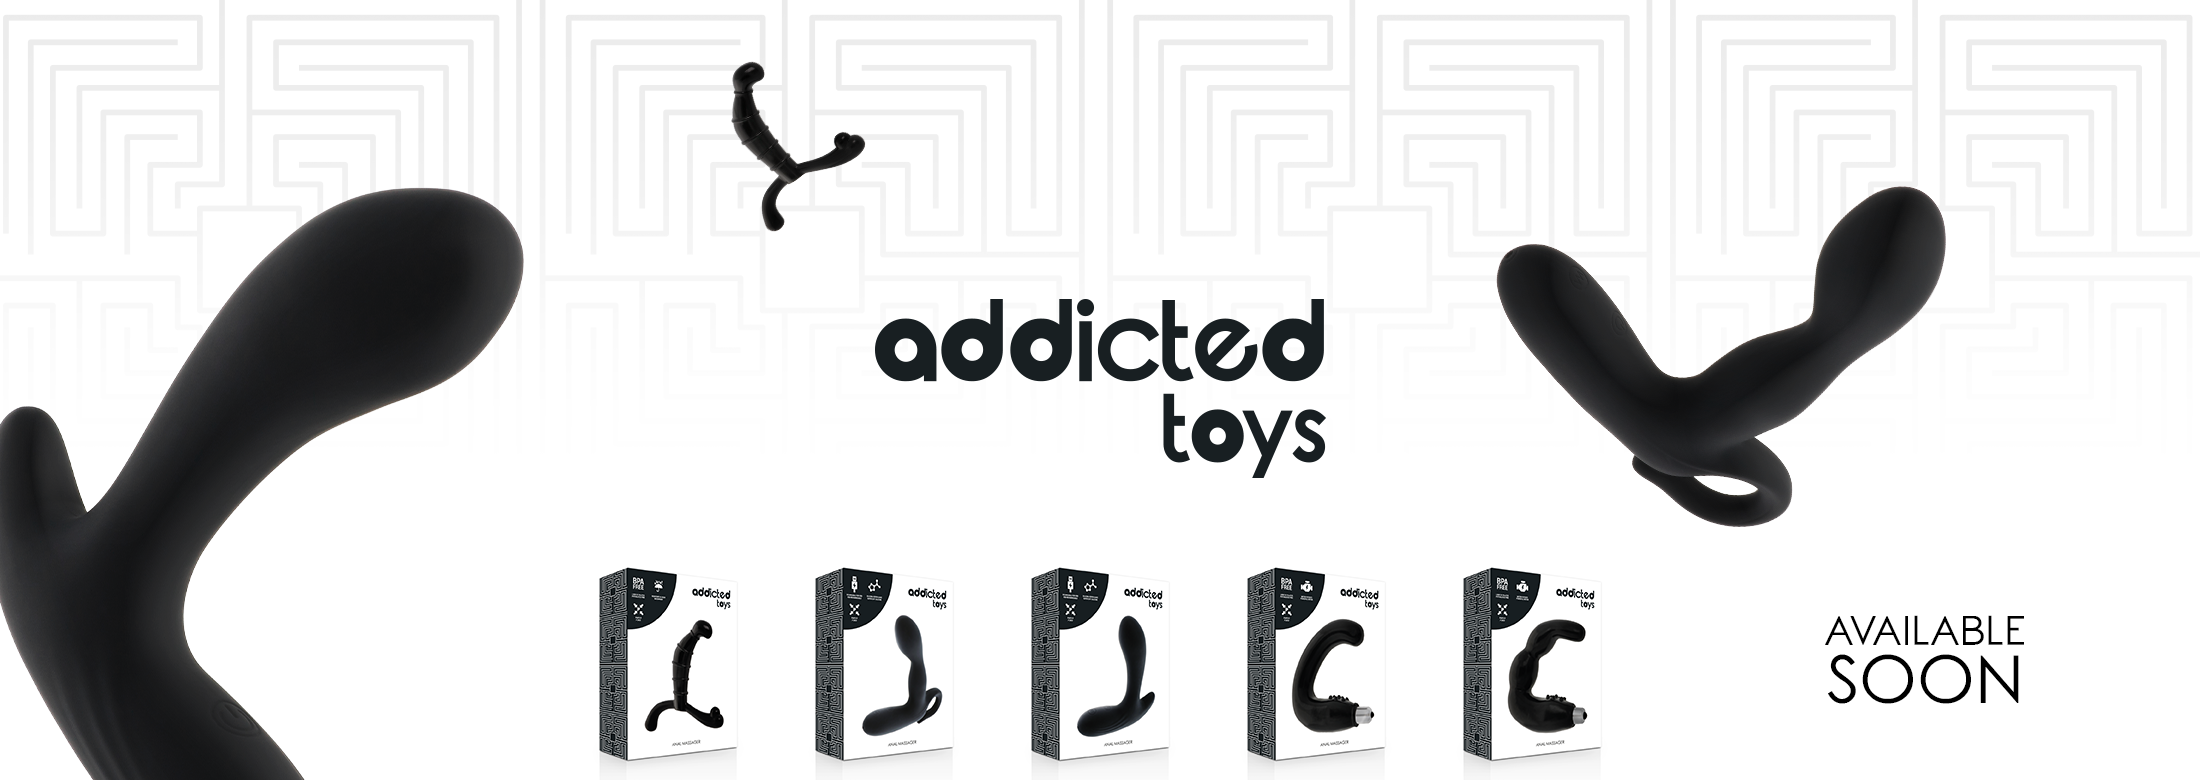 LIST OF PRODUCTS BY MANUFACTURER ADDICTED TOYS